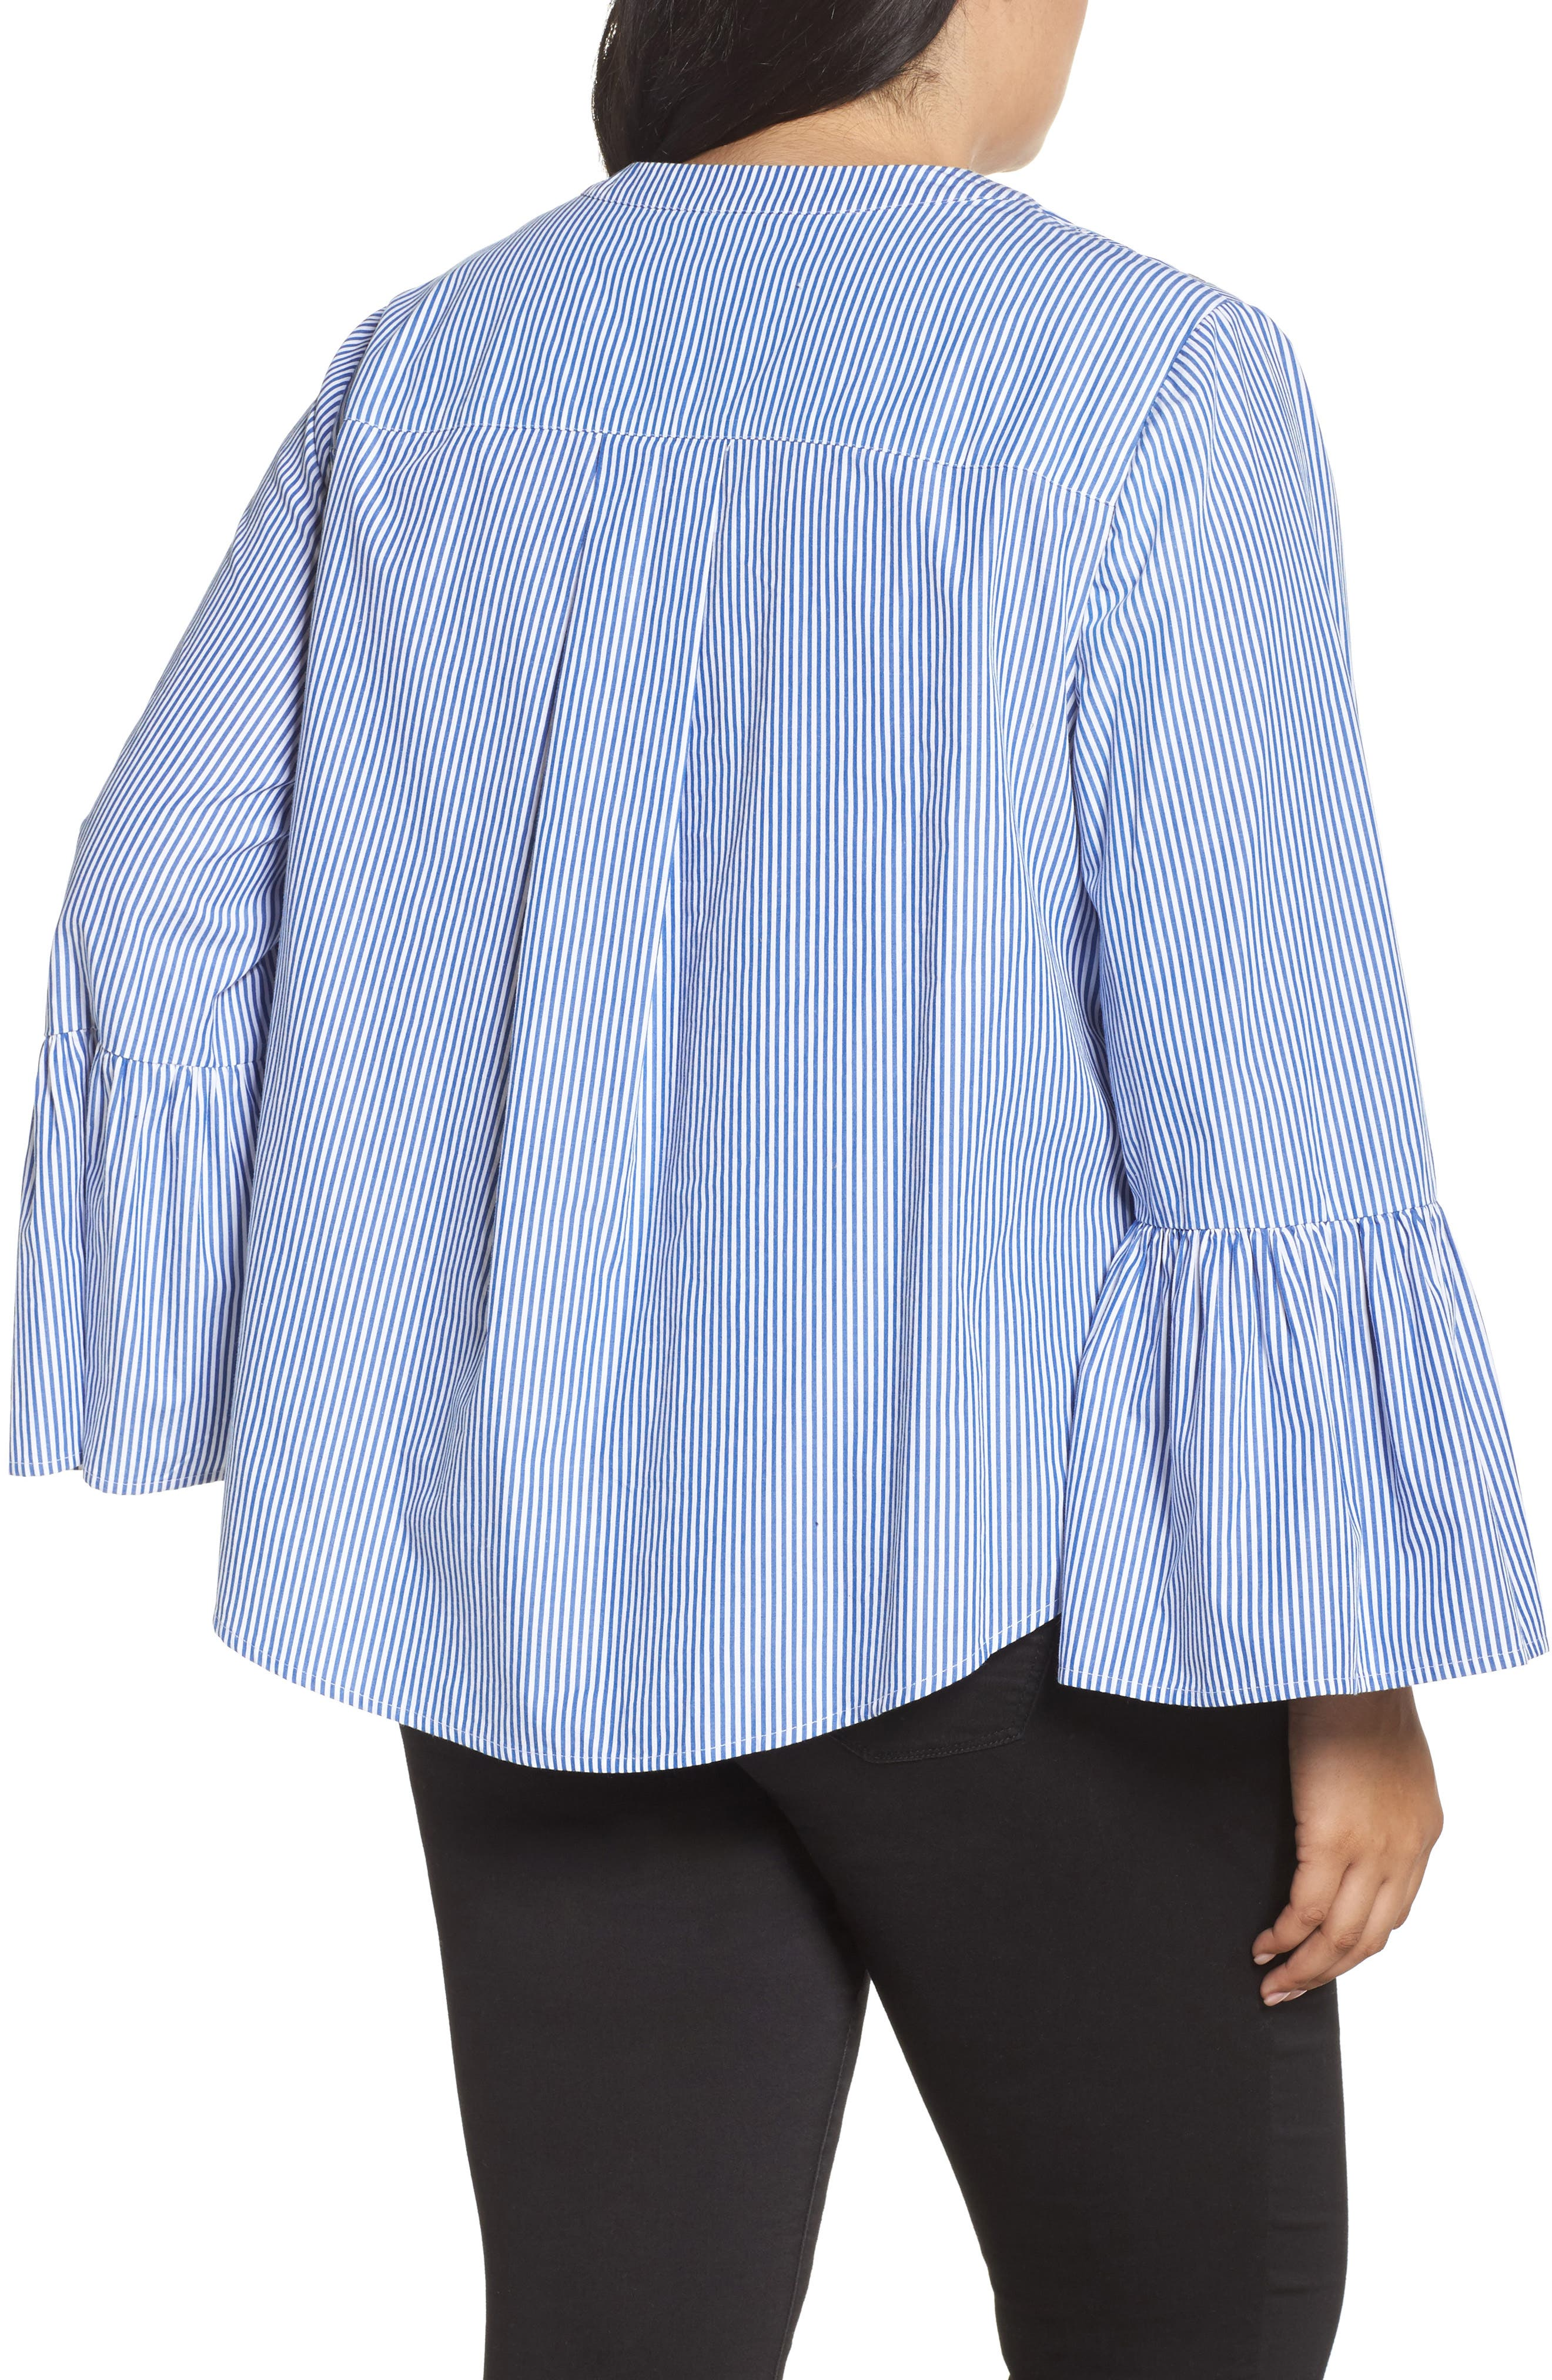 Embroidered Bell Sleeve Top,                             Alternate thumbnail 2, color,                             420